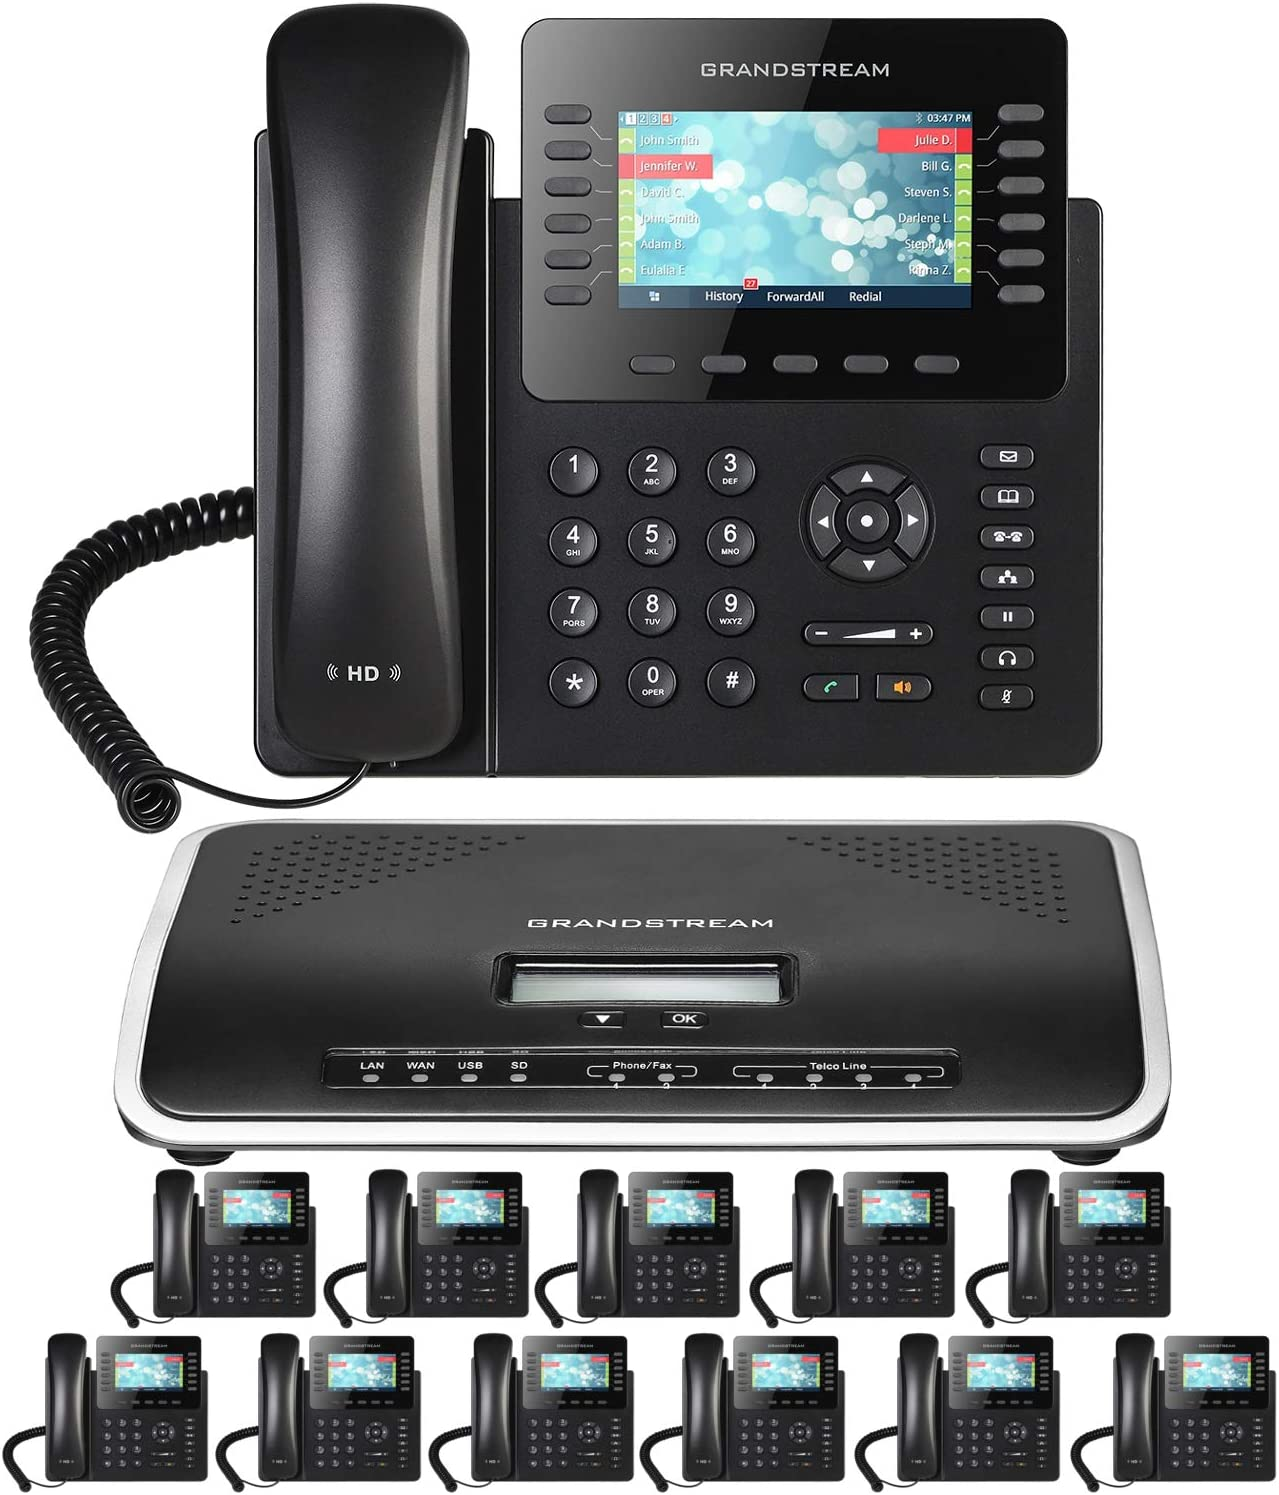 Elegant Business Phone System: 2170 Pack with Voicemail Auto Attendant Now free shipping